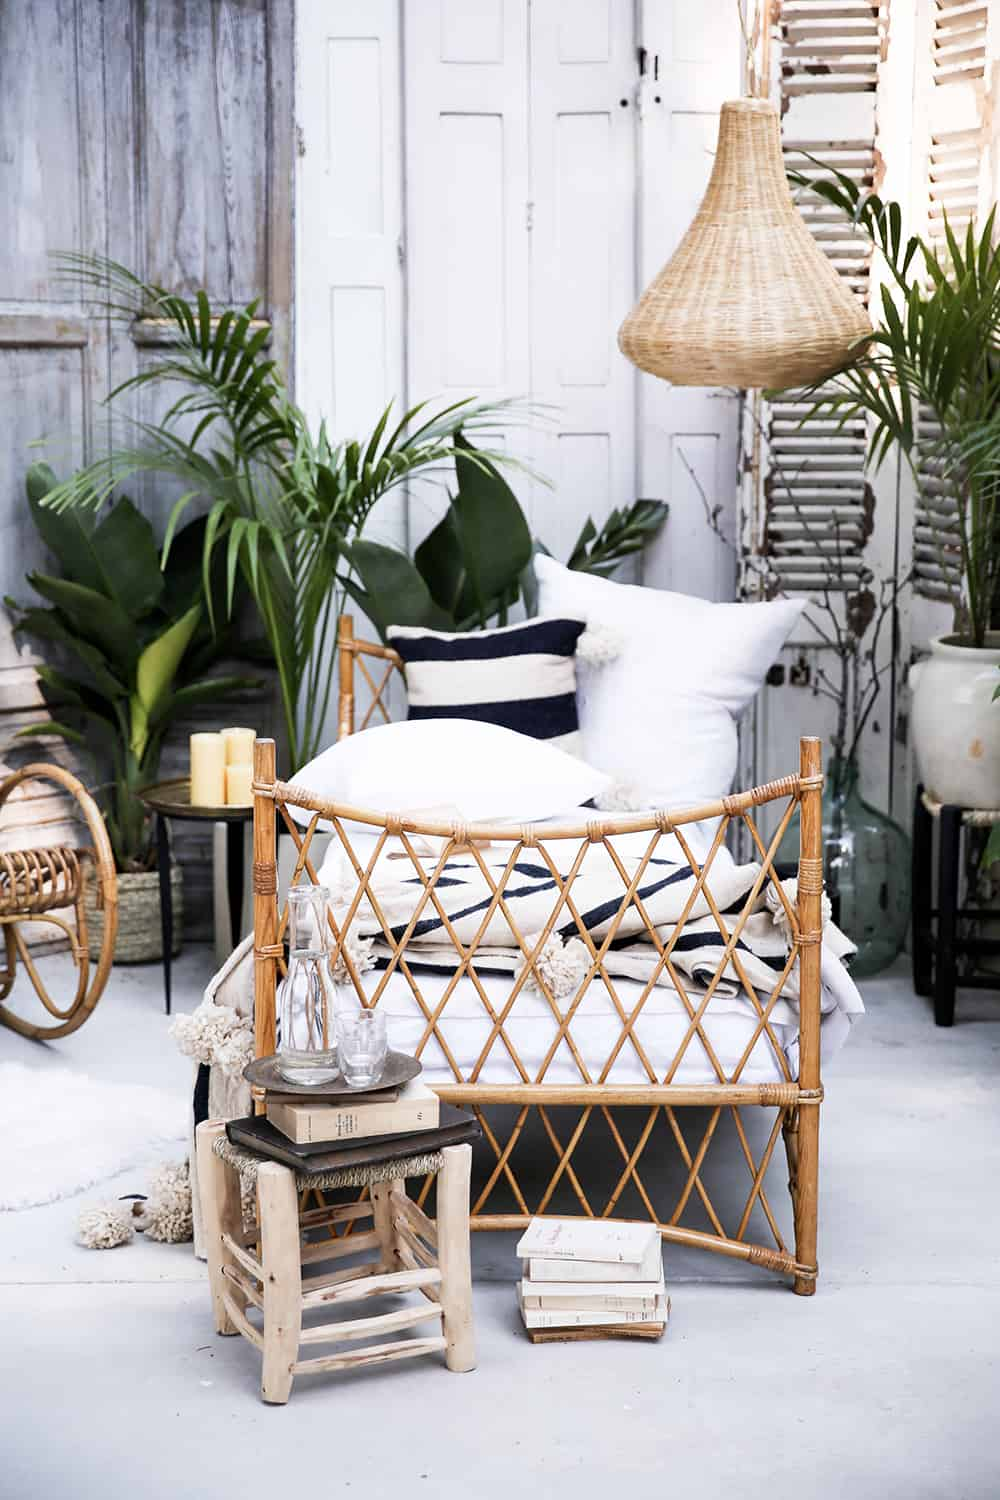 Daybed Rattan Cane Outdoor